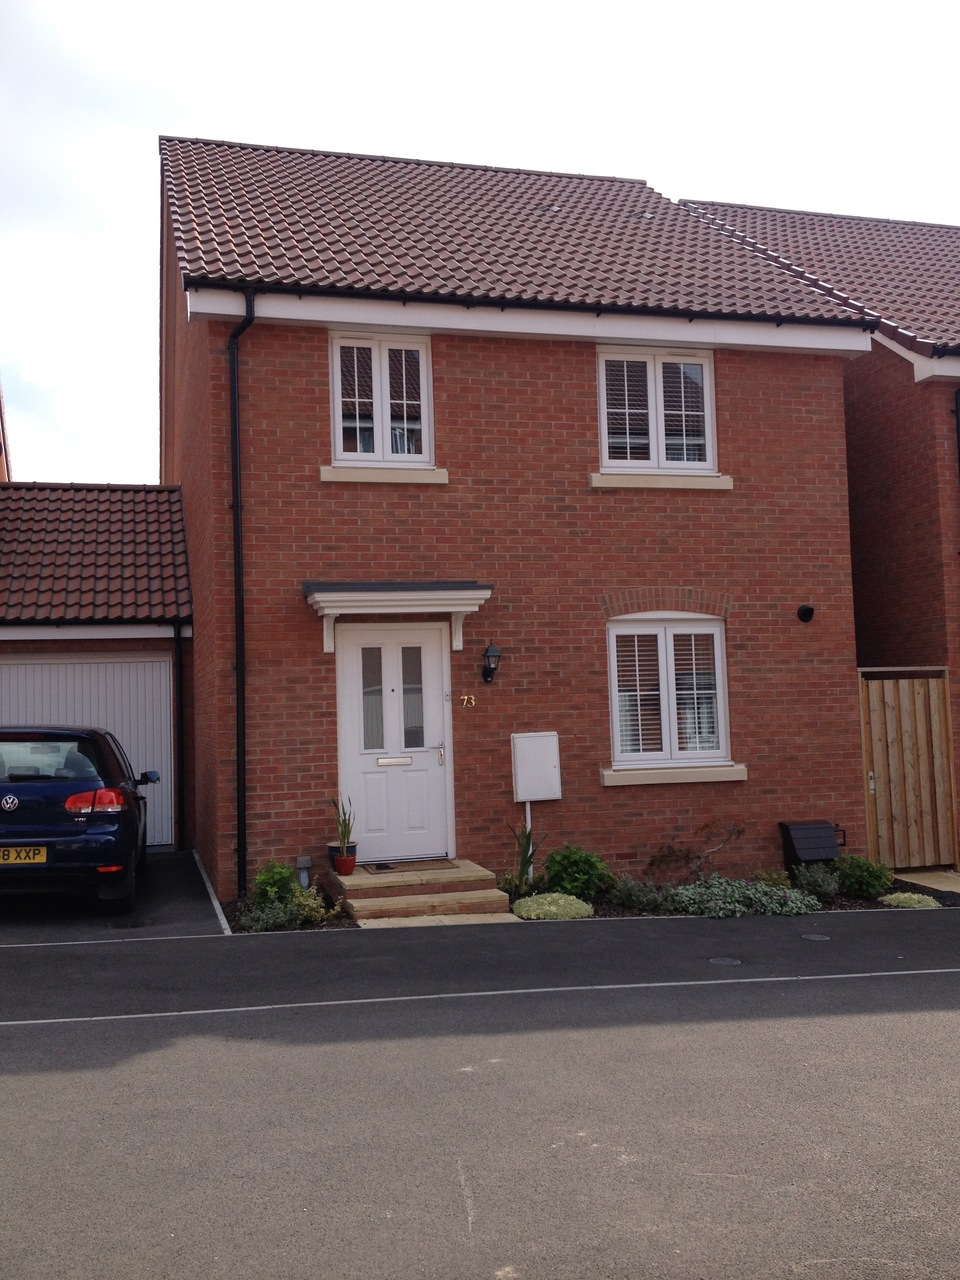 Property To Rent In Wootton Bassett